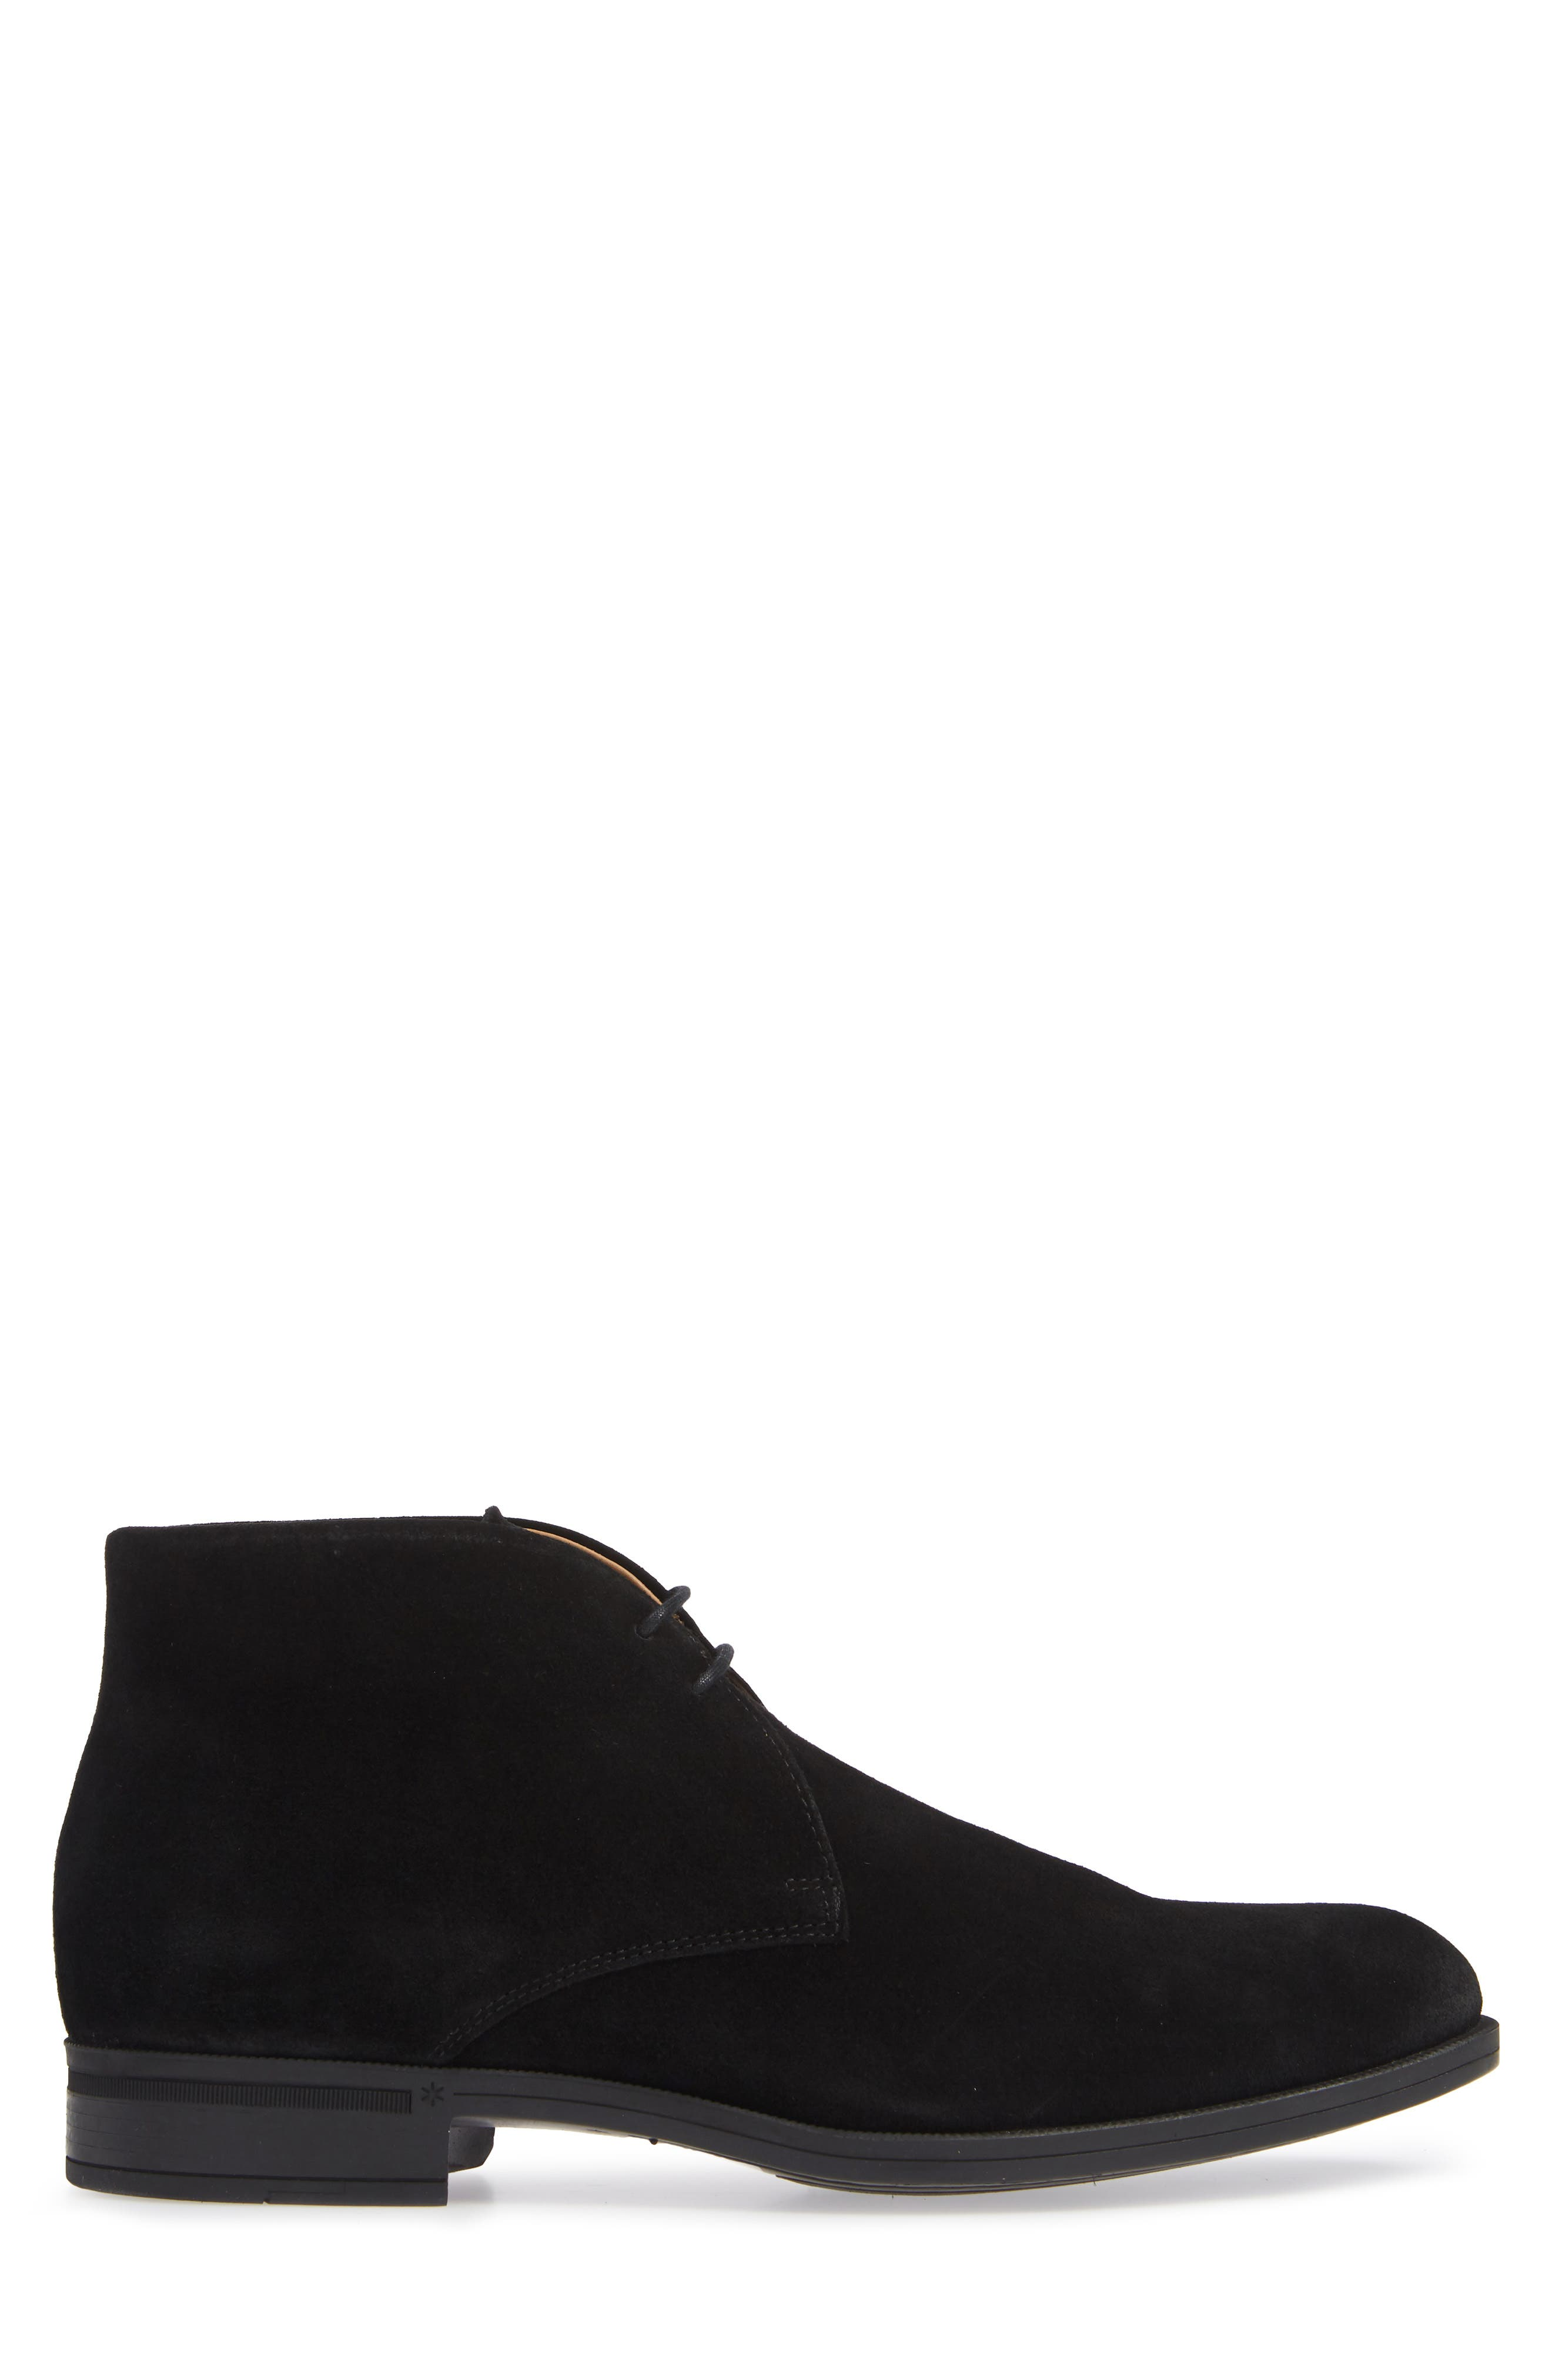 Iden Chukka Boot,                             Alternate thumbnail 3, color,                             BLACK SUEDE